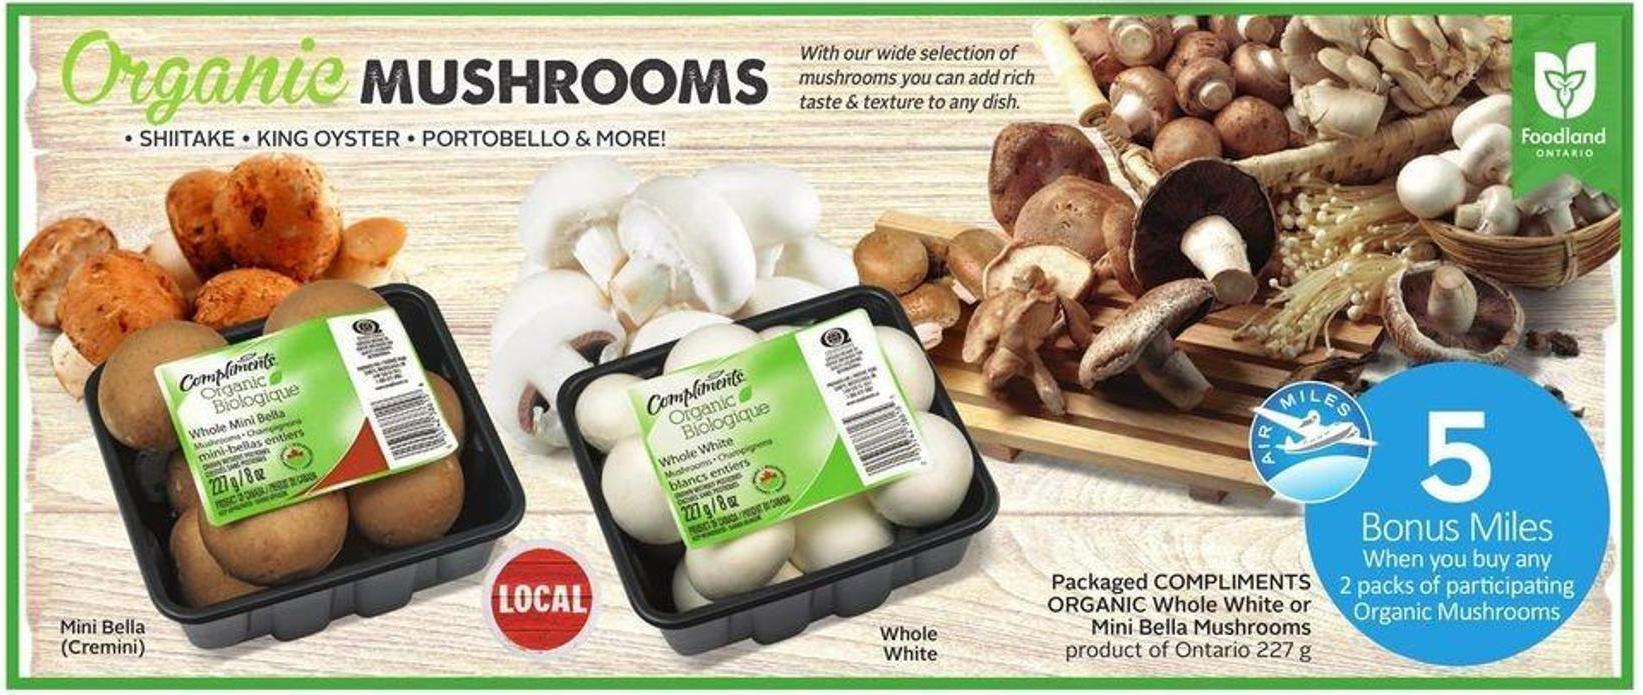 Packaged Compliments Organic Whole White or Mini Bella Mushrooms - 5 Air Miles Bonus Miles